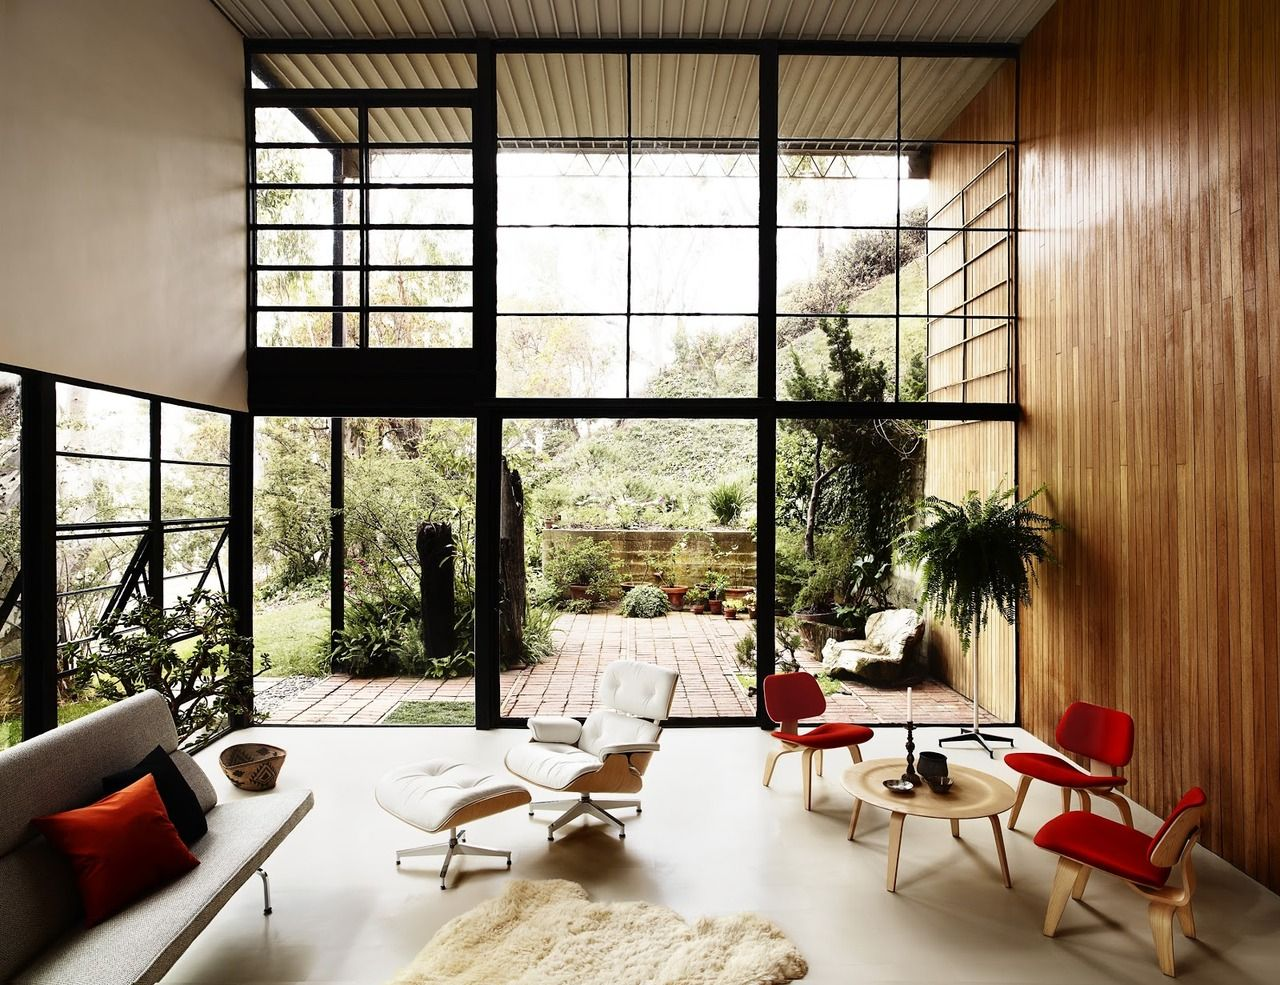 case study house 8 eames house charles and ray eames. Black Bedroom Furniture Sets. Home Design Ideas